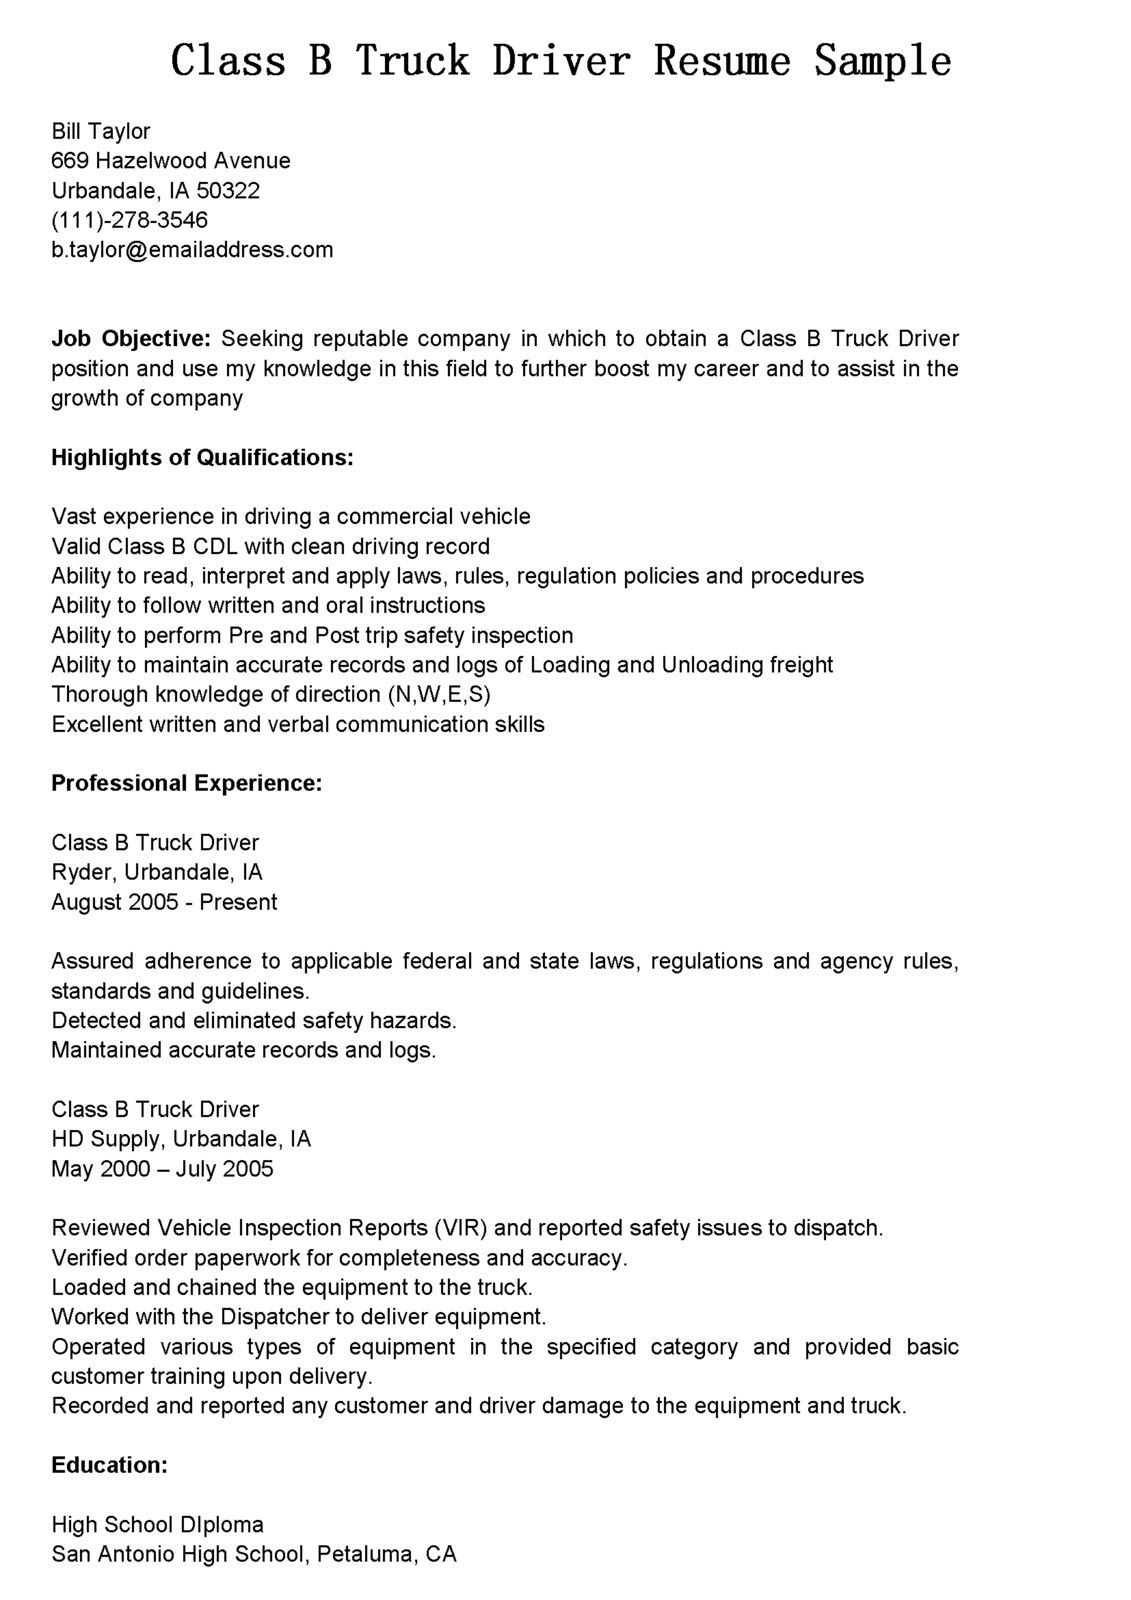 truck drivers resume sample latest format examples job driving objective seamstress Resume Truck Driving Resume Objective Examples